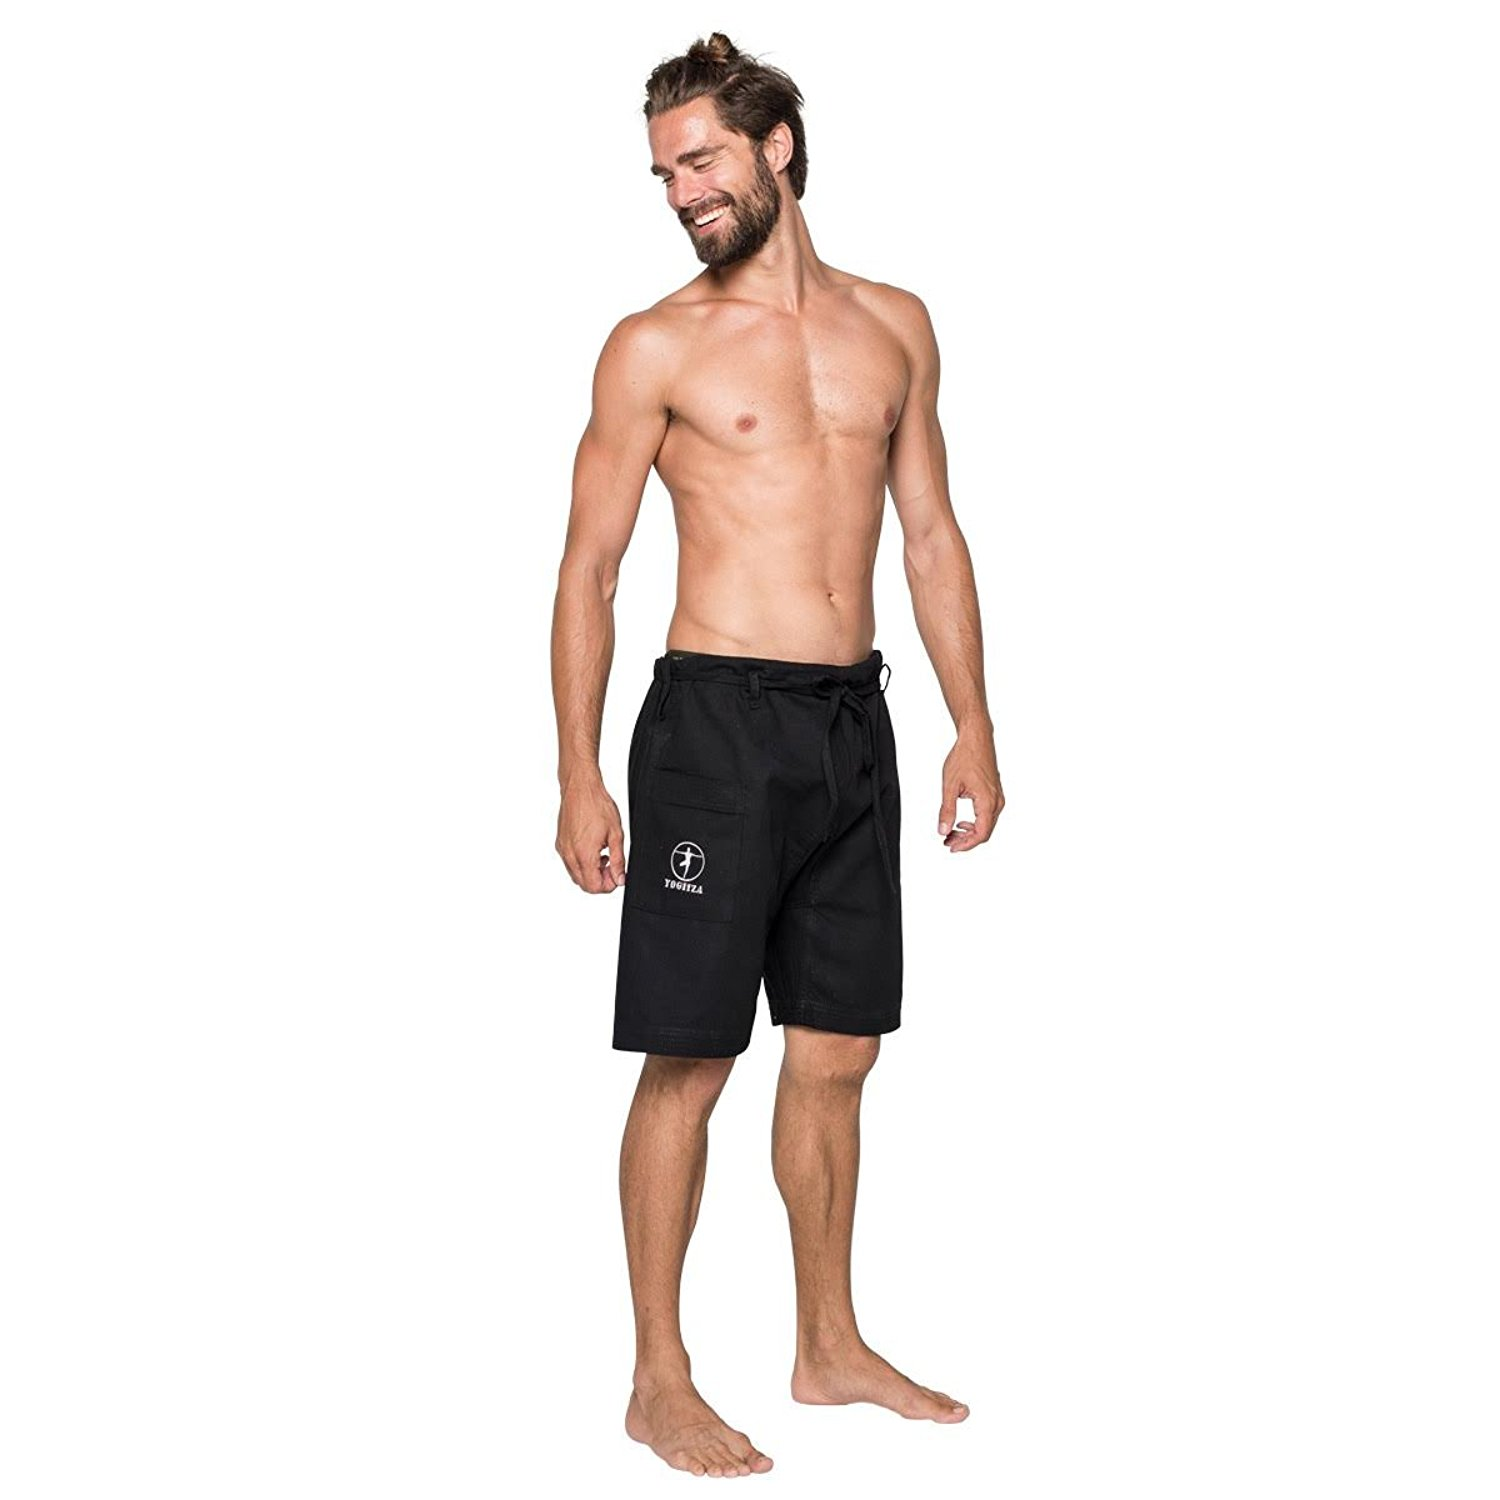 mens yoga shorts amazon.com: menu0027s yoga shorts in organic cotton: clothing tylvykj